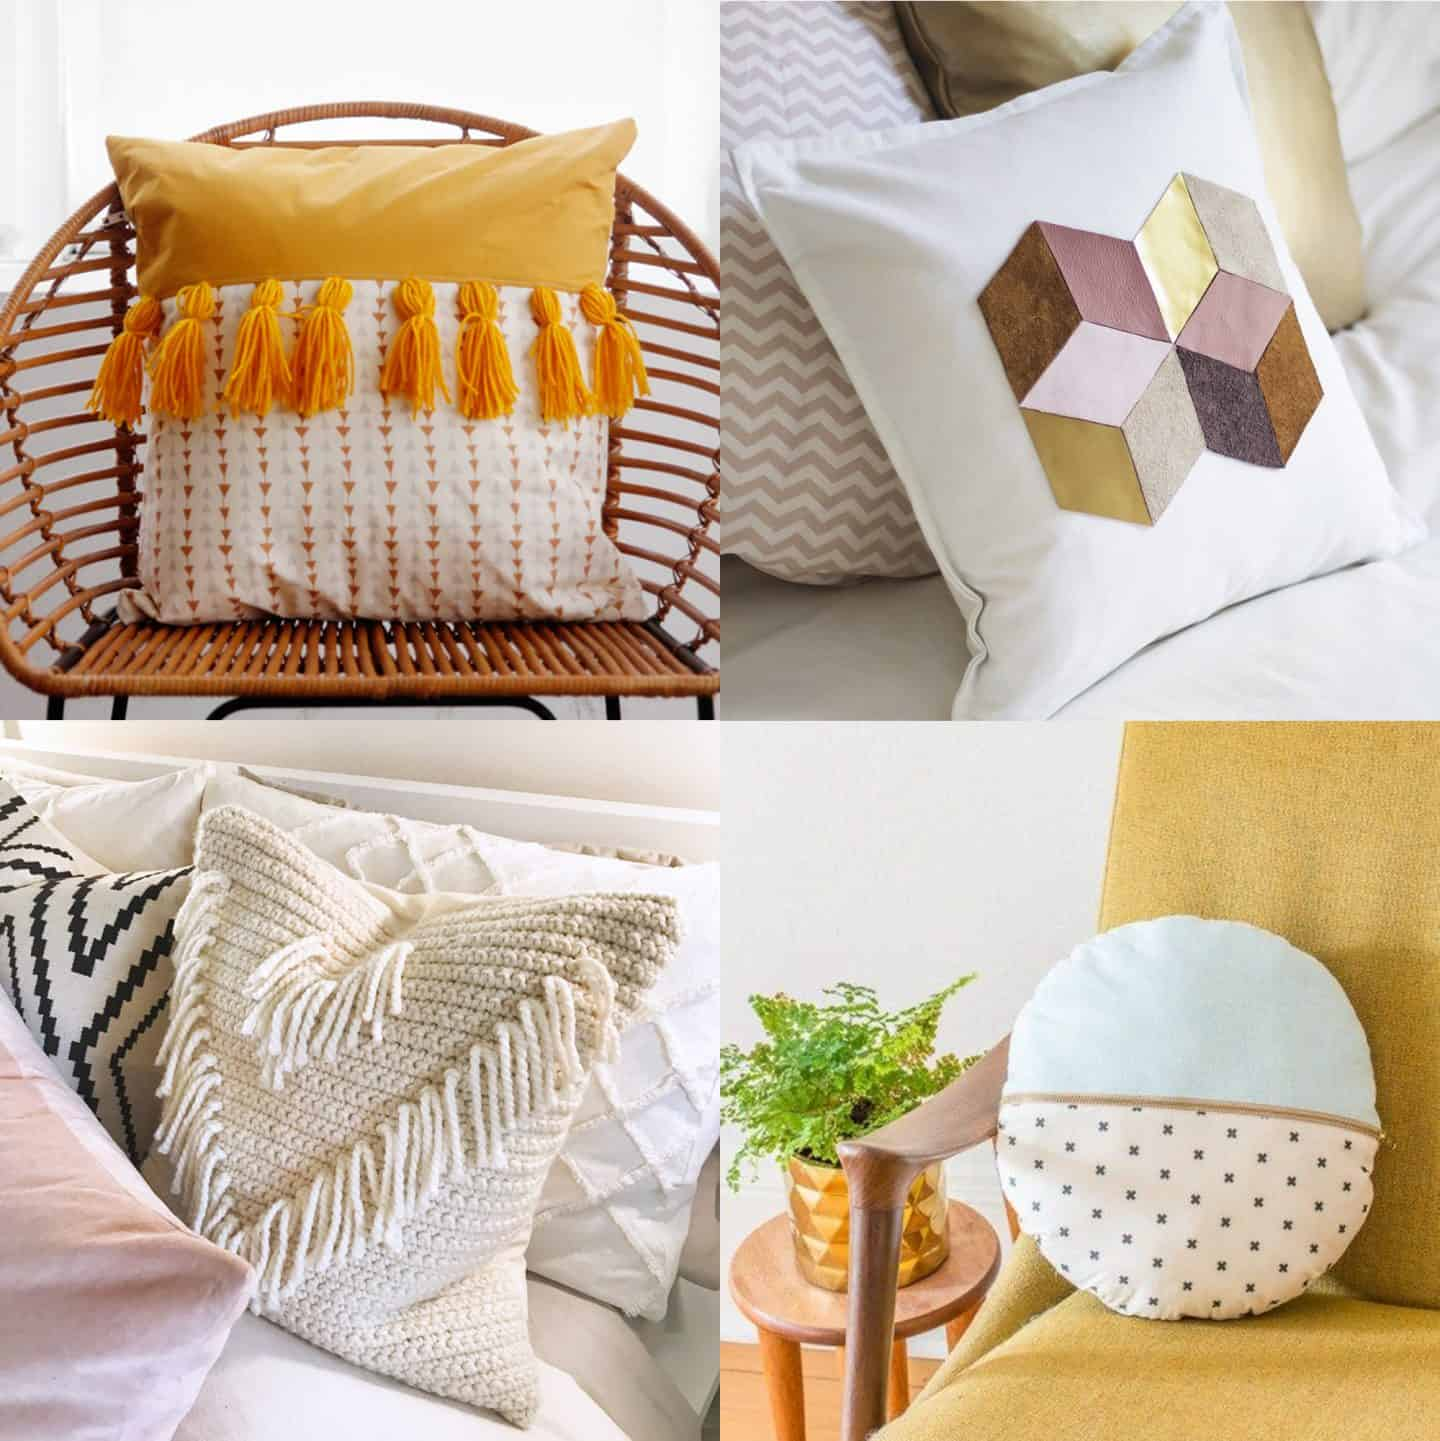 50 DIY pillows to jazz up your decor